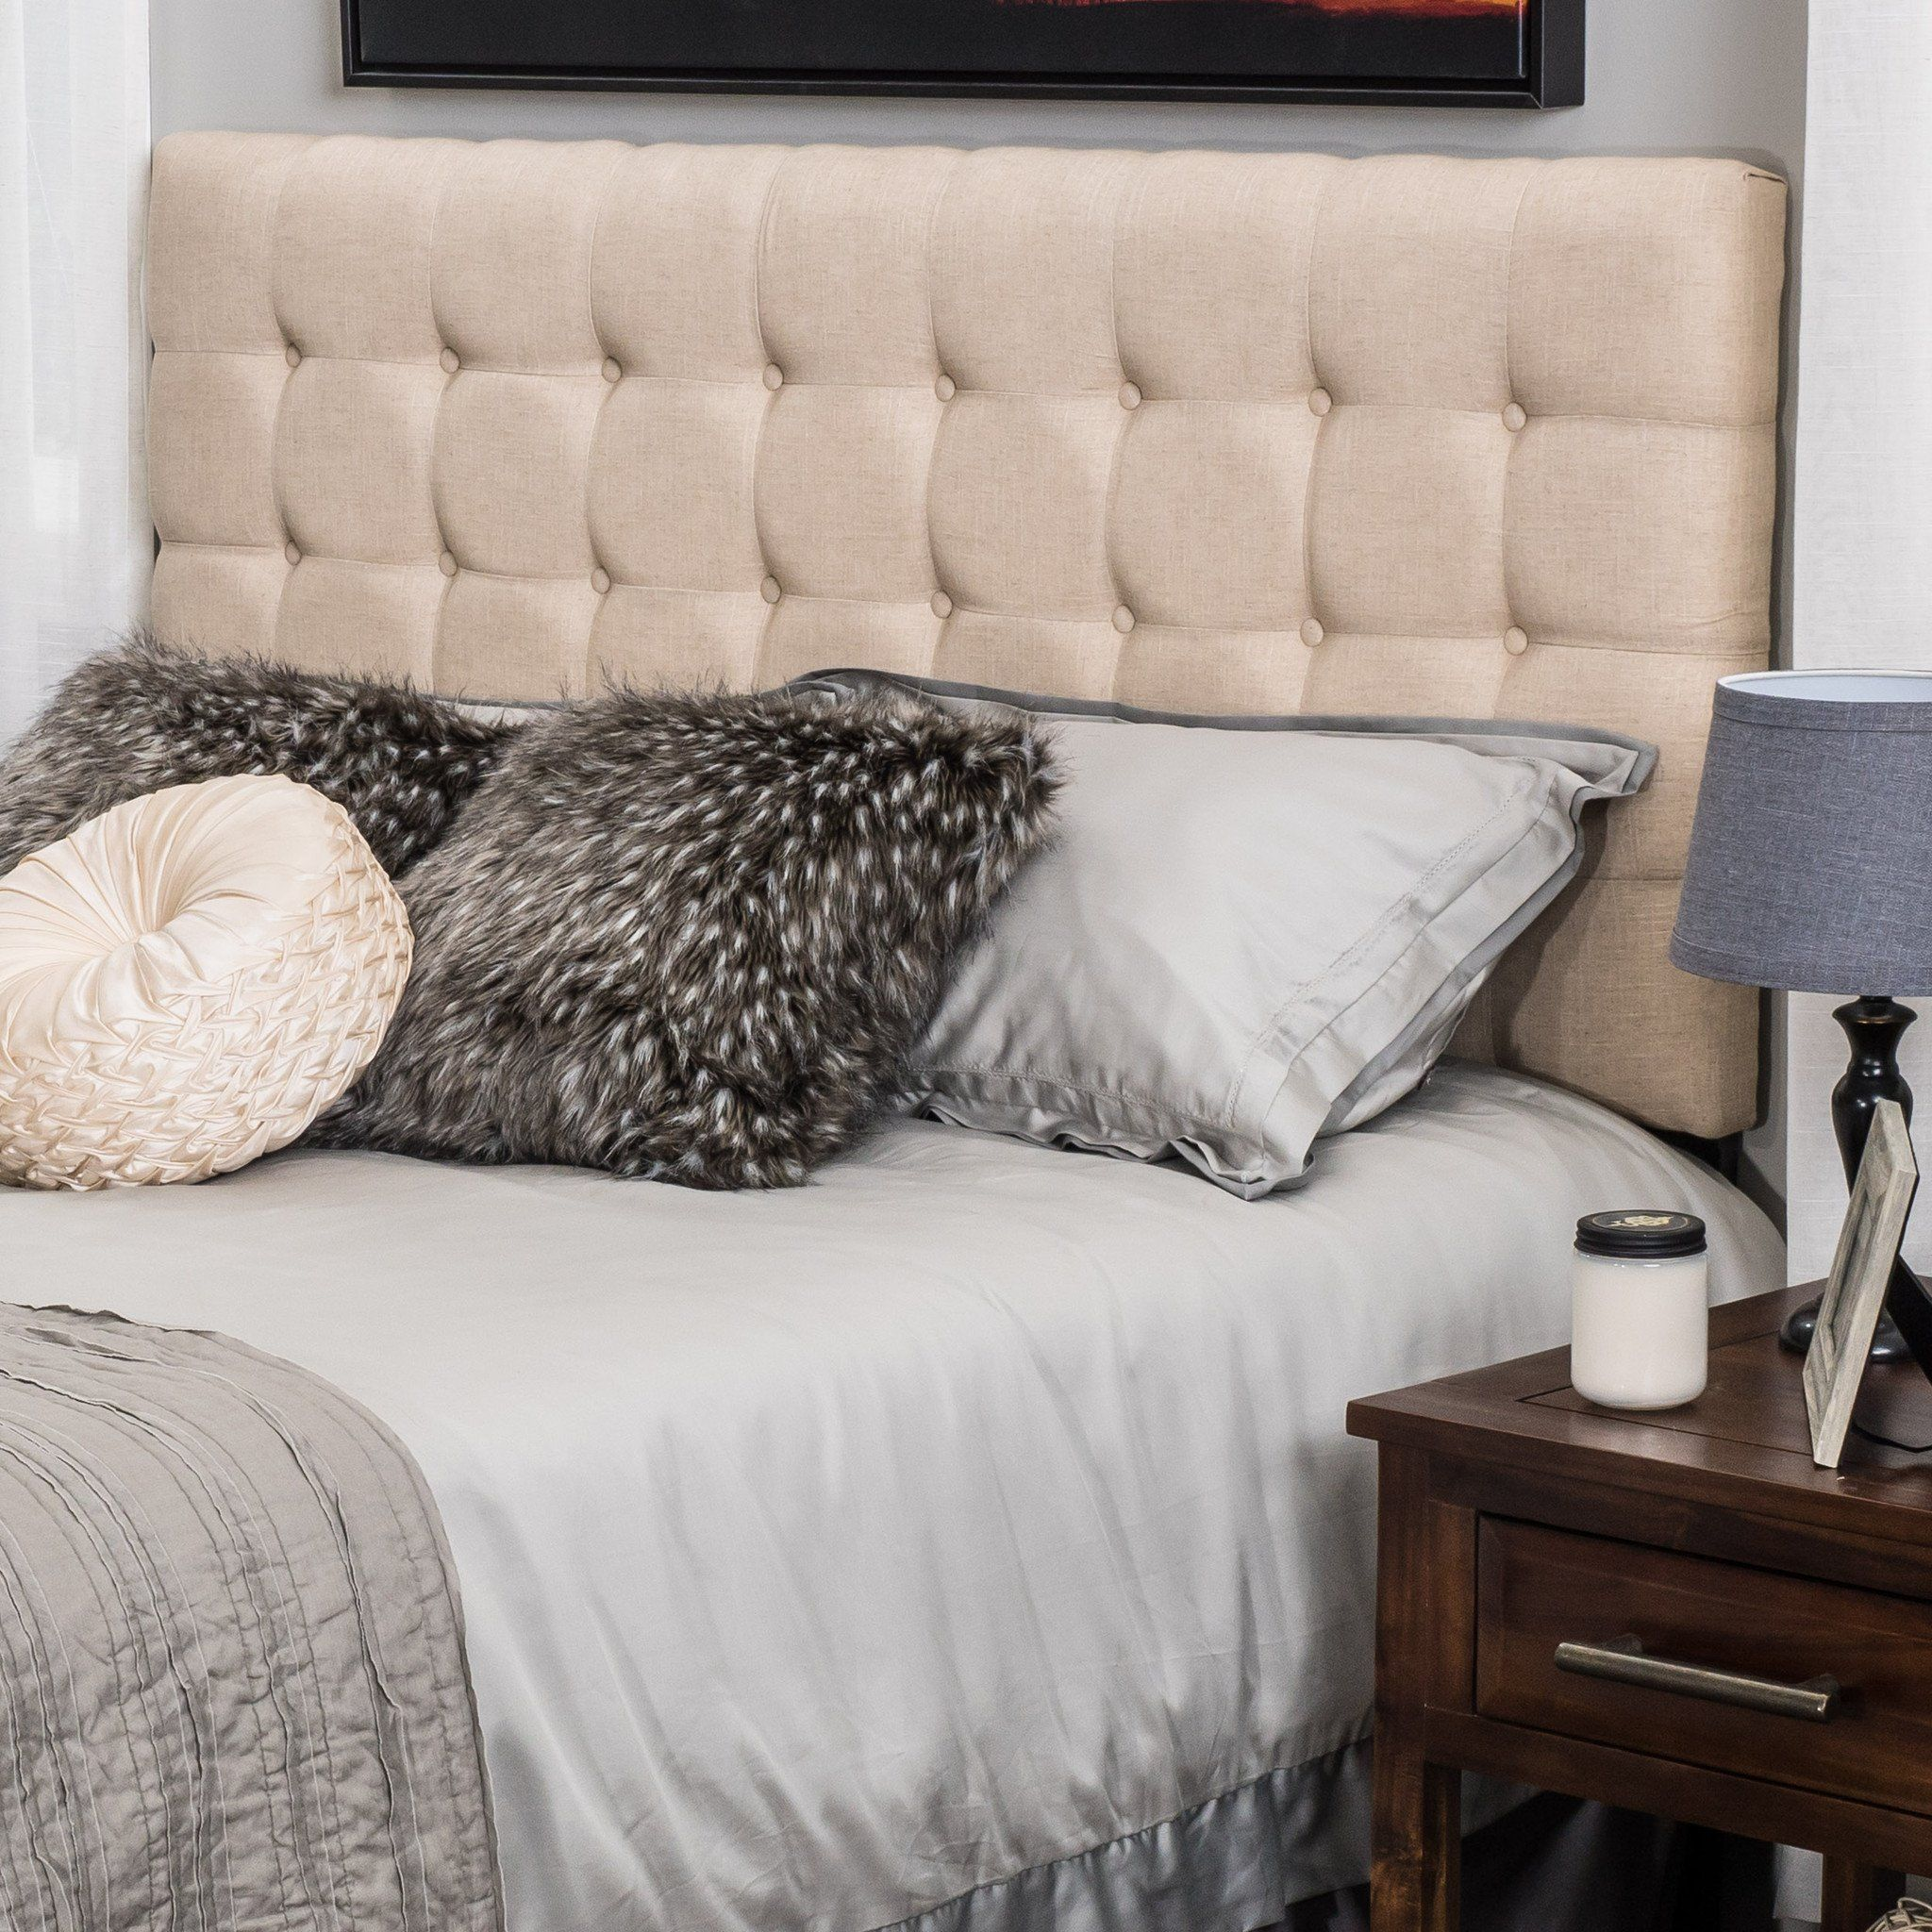 Unique Pictures Of Bedrooms with Upholstered Headboards